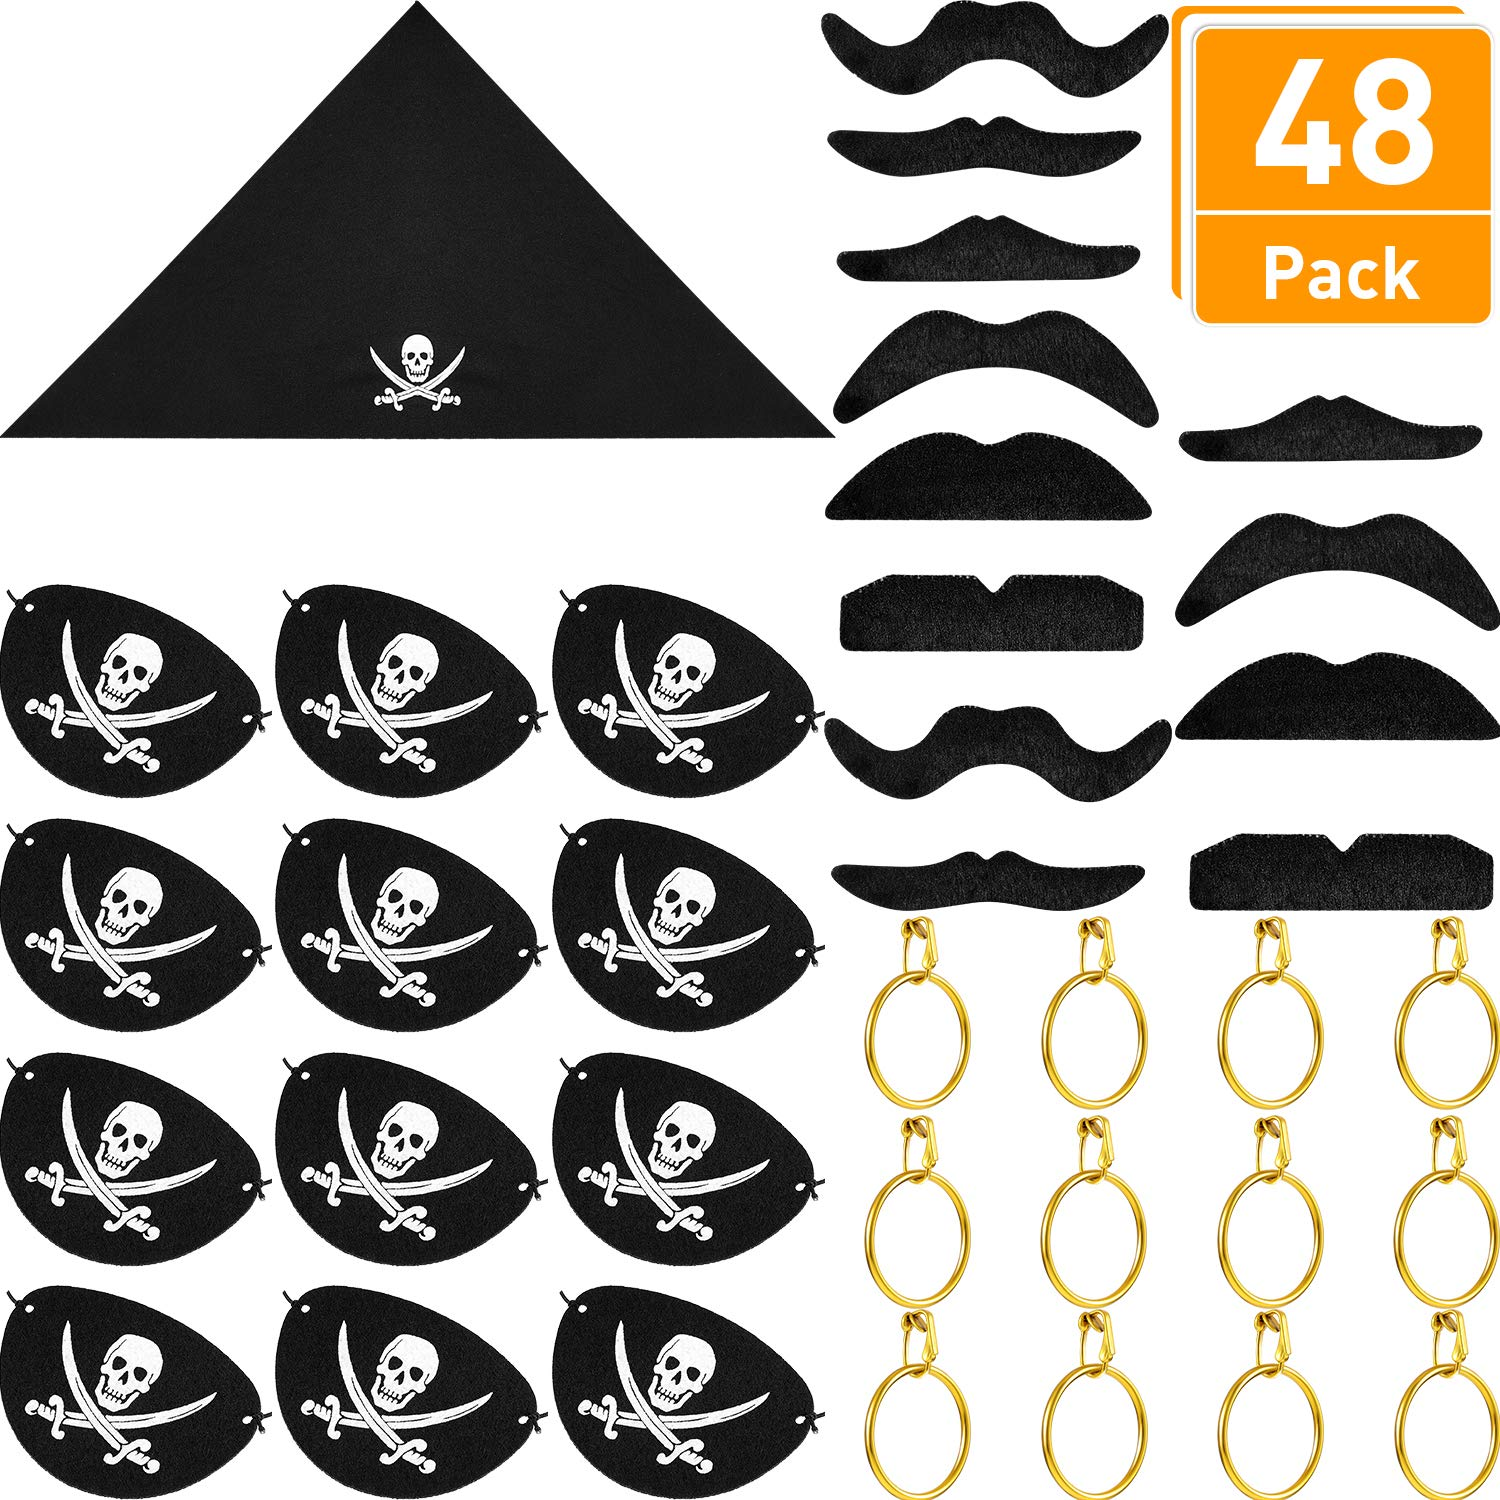 Blulu 48 Pieces Pirate Captain Costume Sets, Felt Pirate Captain Eye Patches, Pirate Bandana, Pirate Gold Earrings, Pirate Fake Moustache for Halloween and Pirate Party